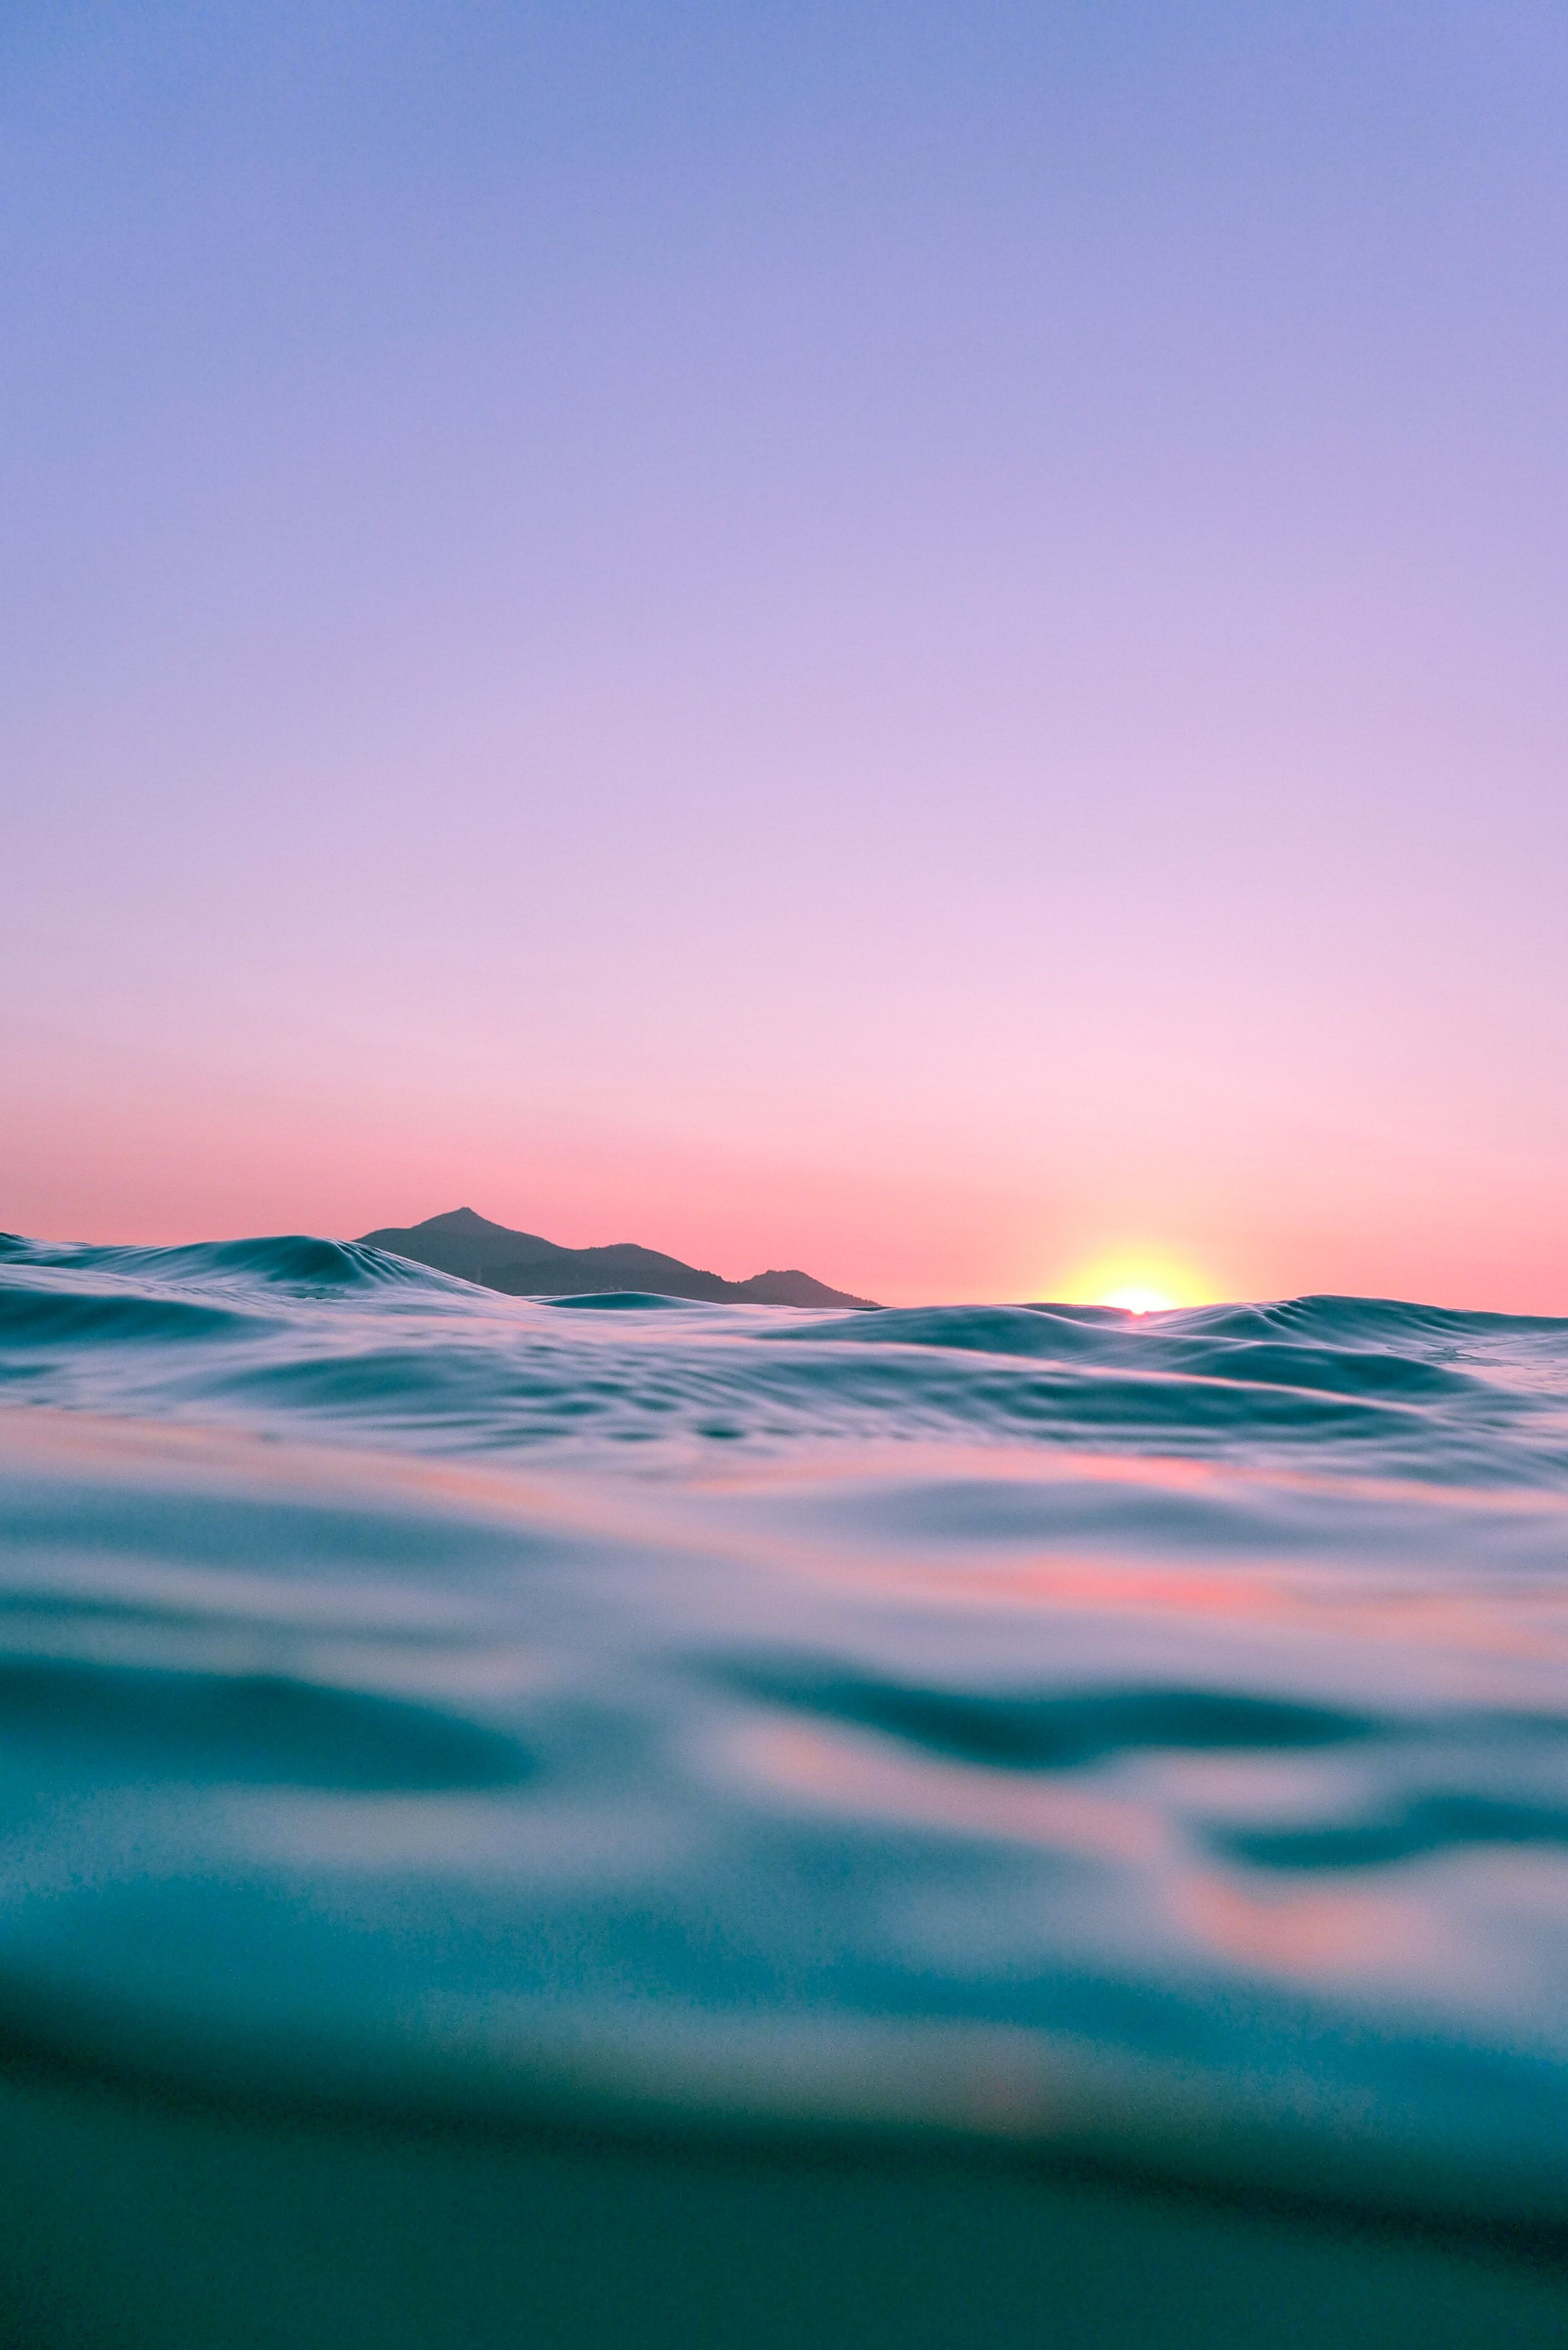 Water Pink Sky Calm Body Of Calm Body Of Water During Golden Hour Waking Up At 5 30 We Entered The Wat Calming Pictures Aesthetic Light Water Pictures